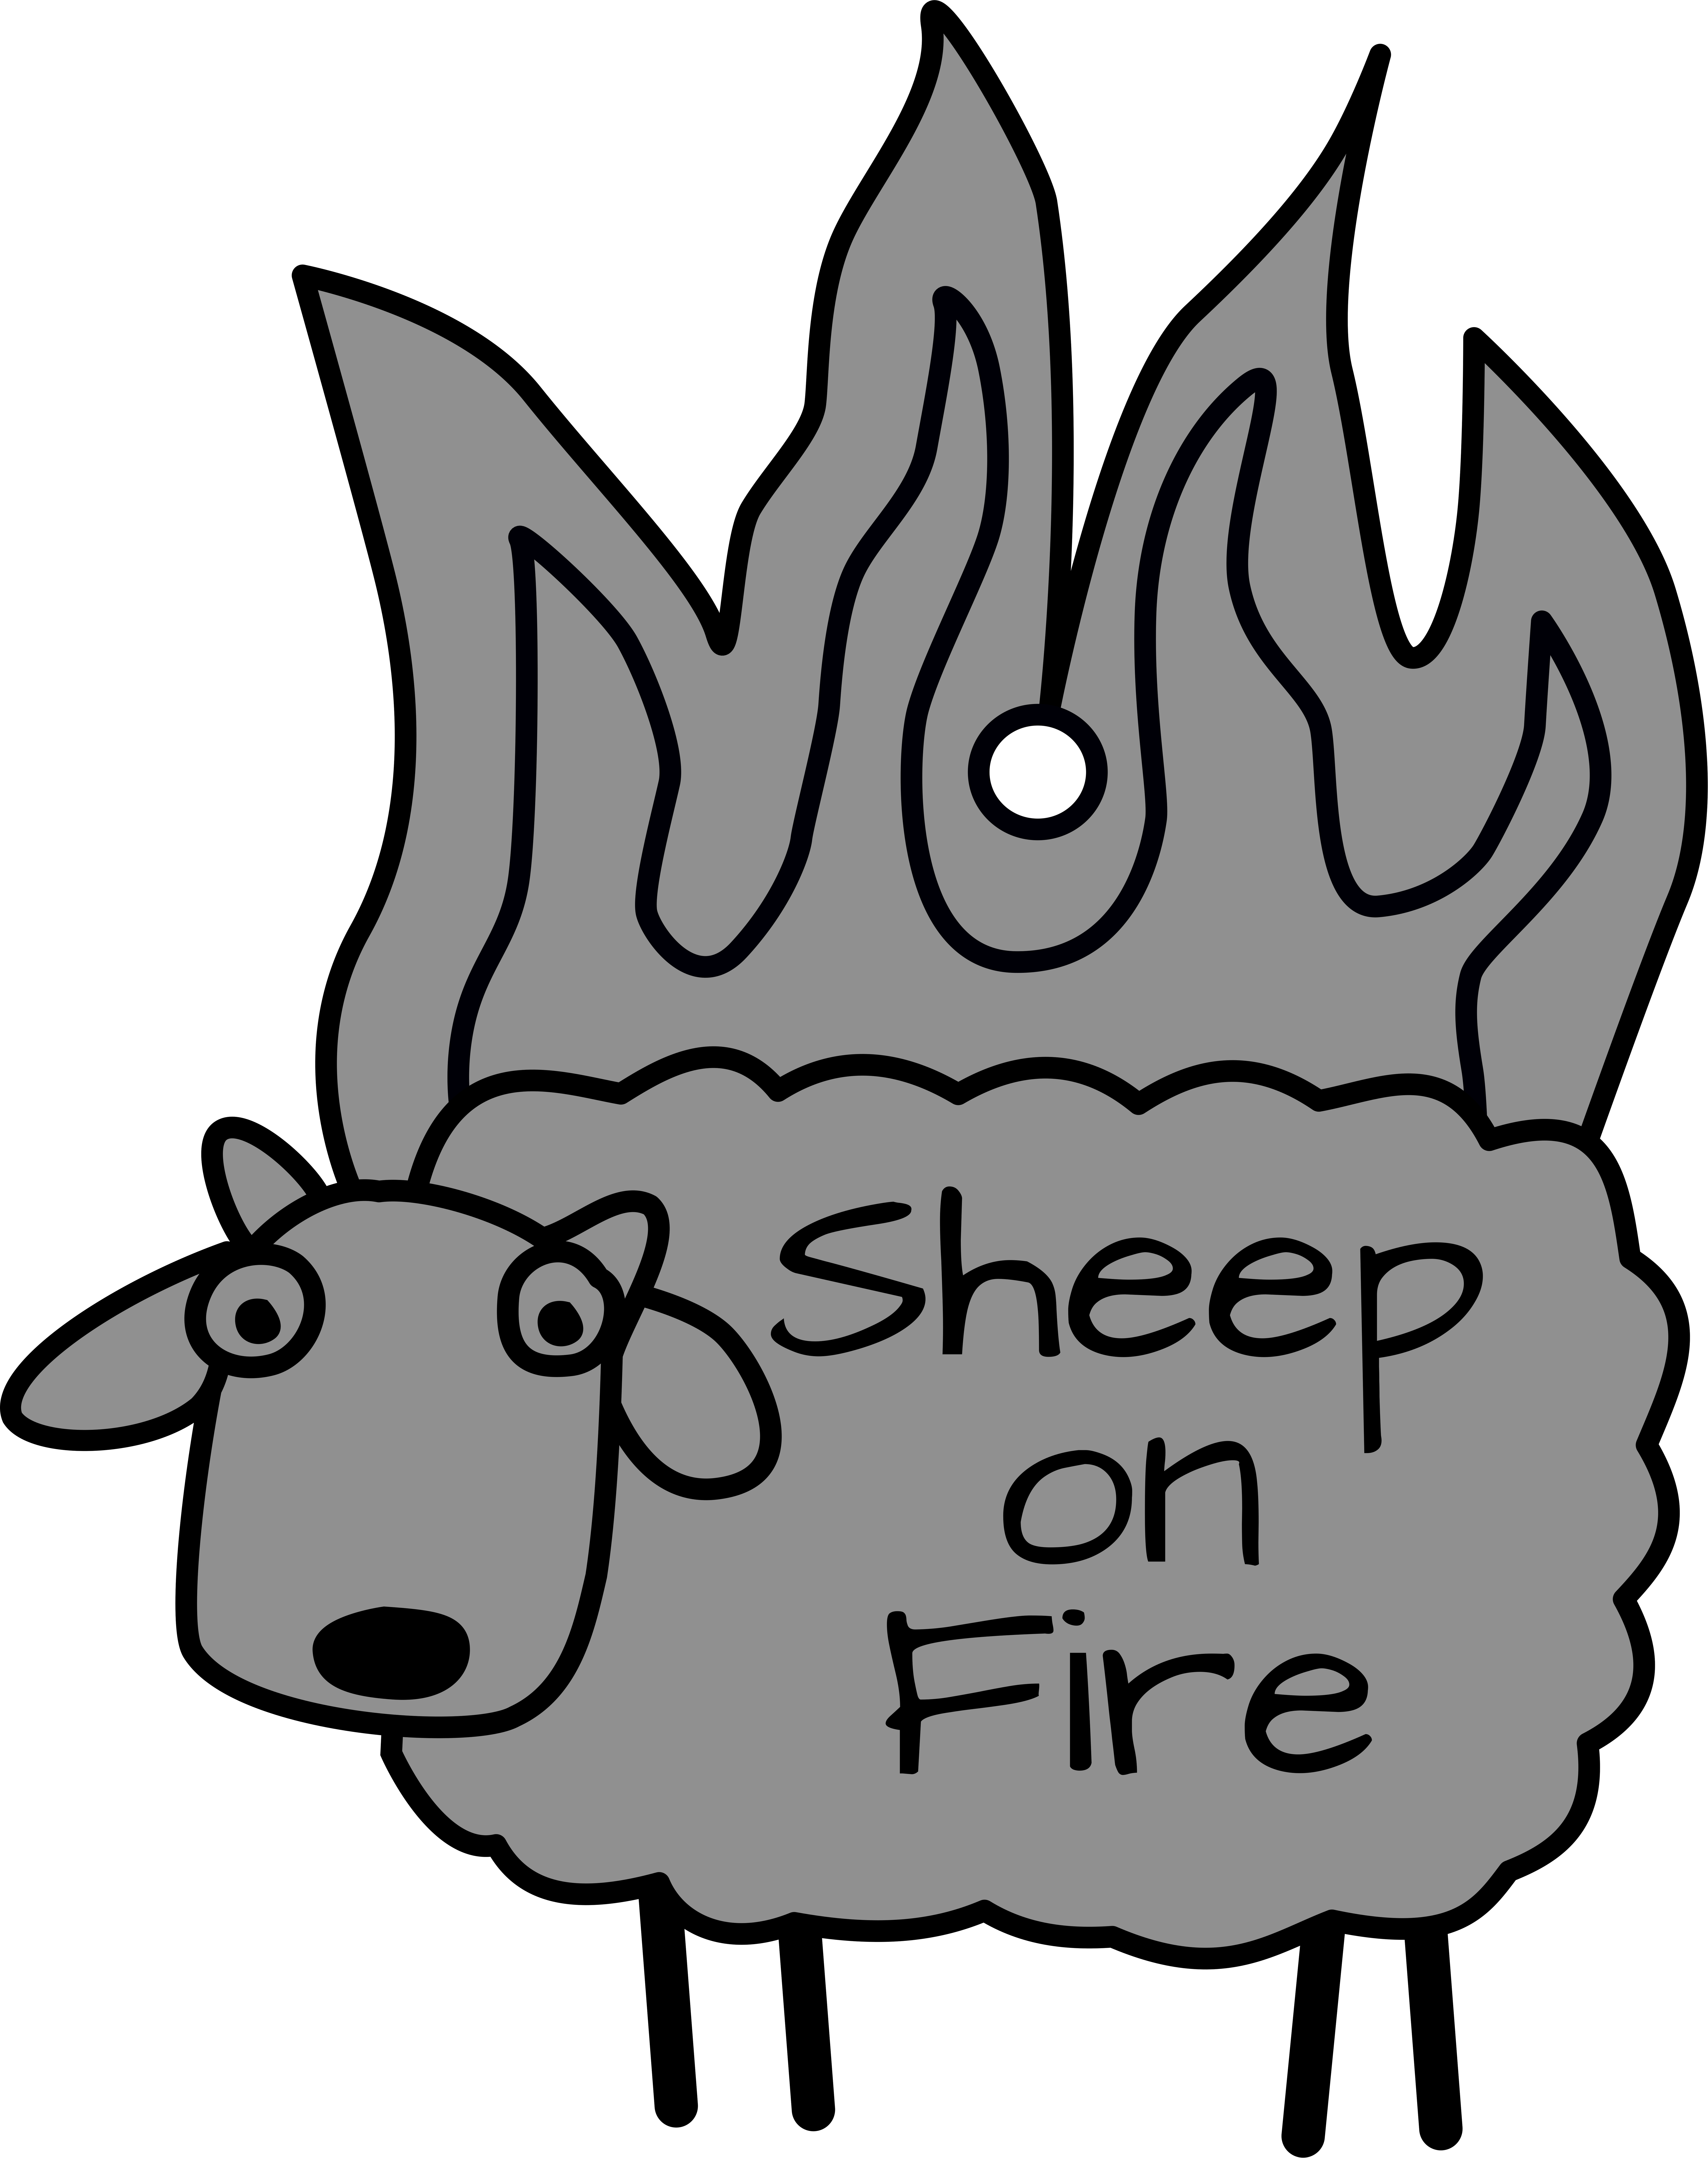 file:sheep_on_fire_3d_print.png